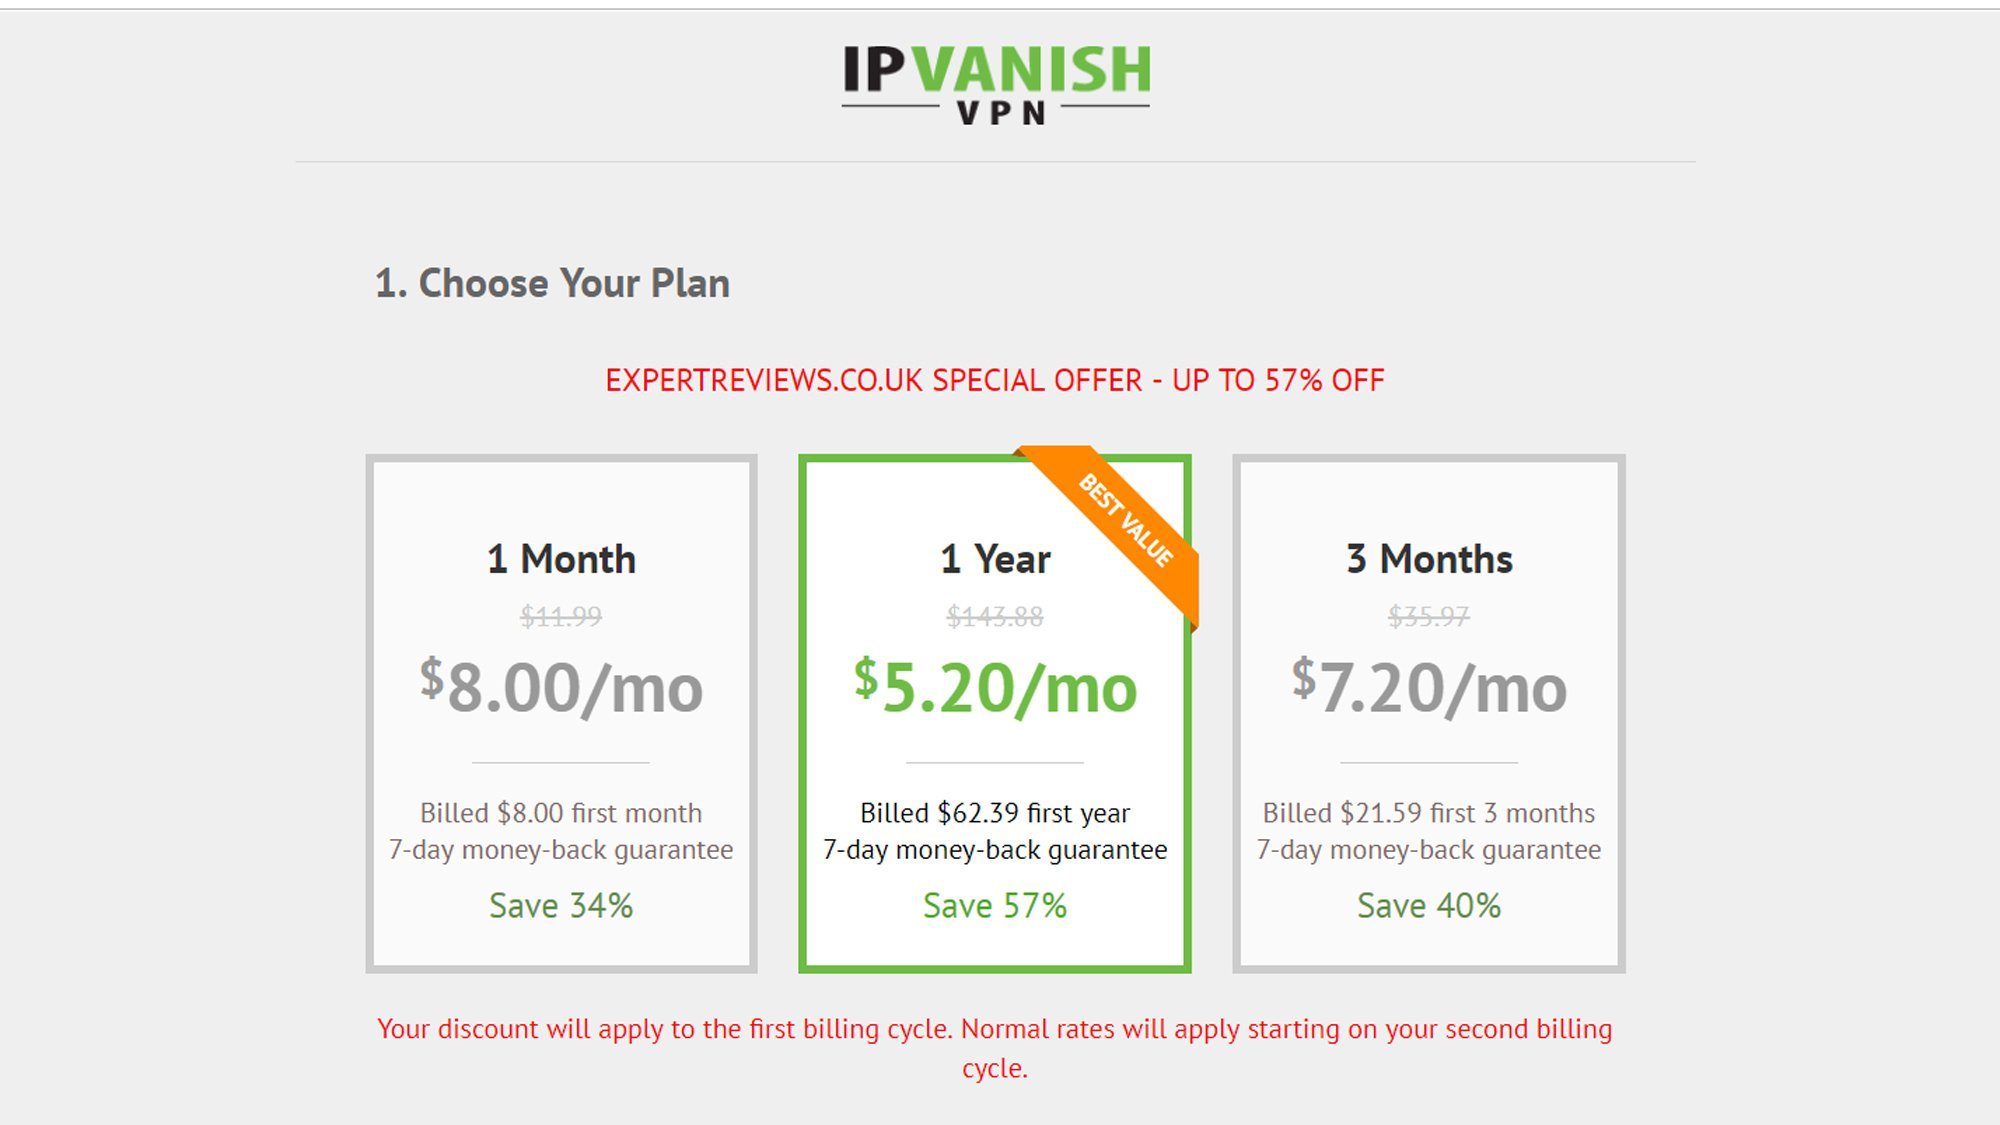 Lowest Prices On Ip Vanish